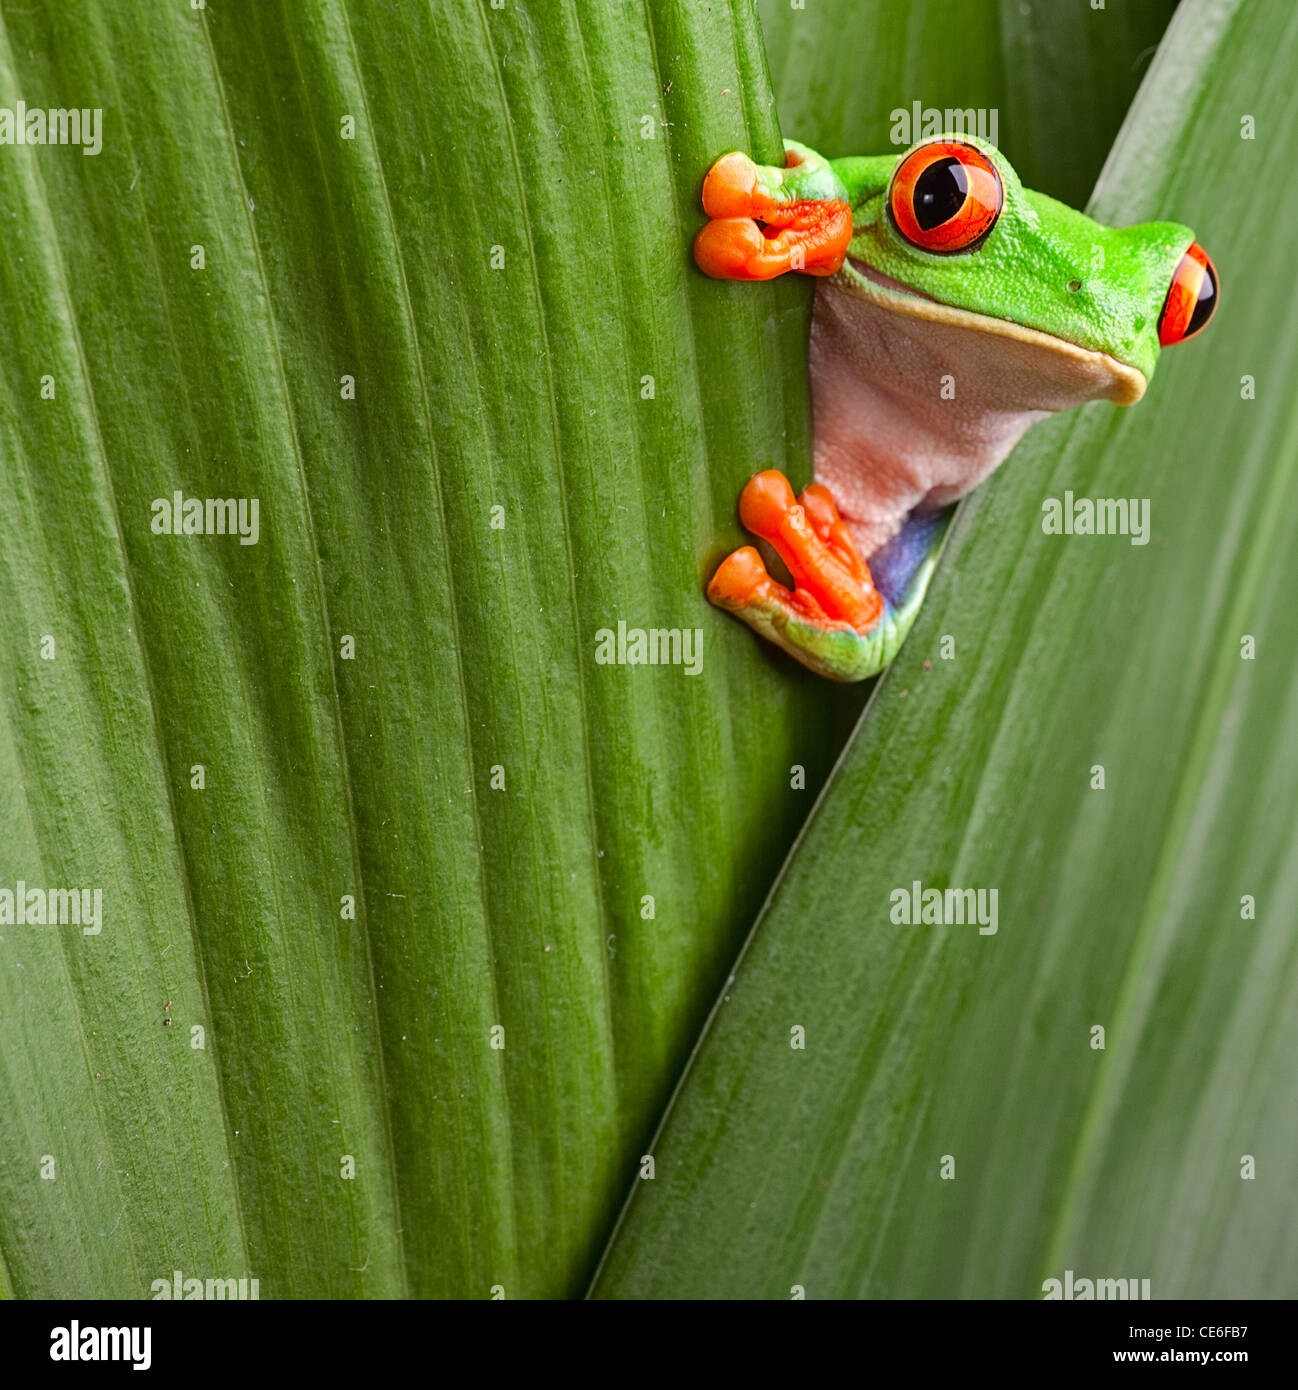 red eyed tree frog, Agalychnis callidrias curious treefrog in rainforest Costa Rica hiding between green leafs - Stock Image